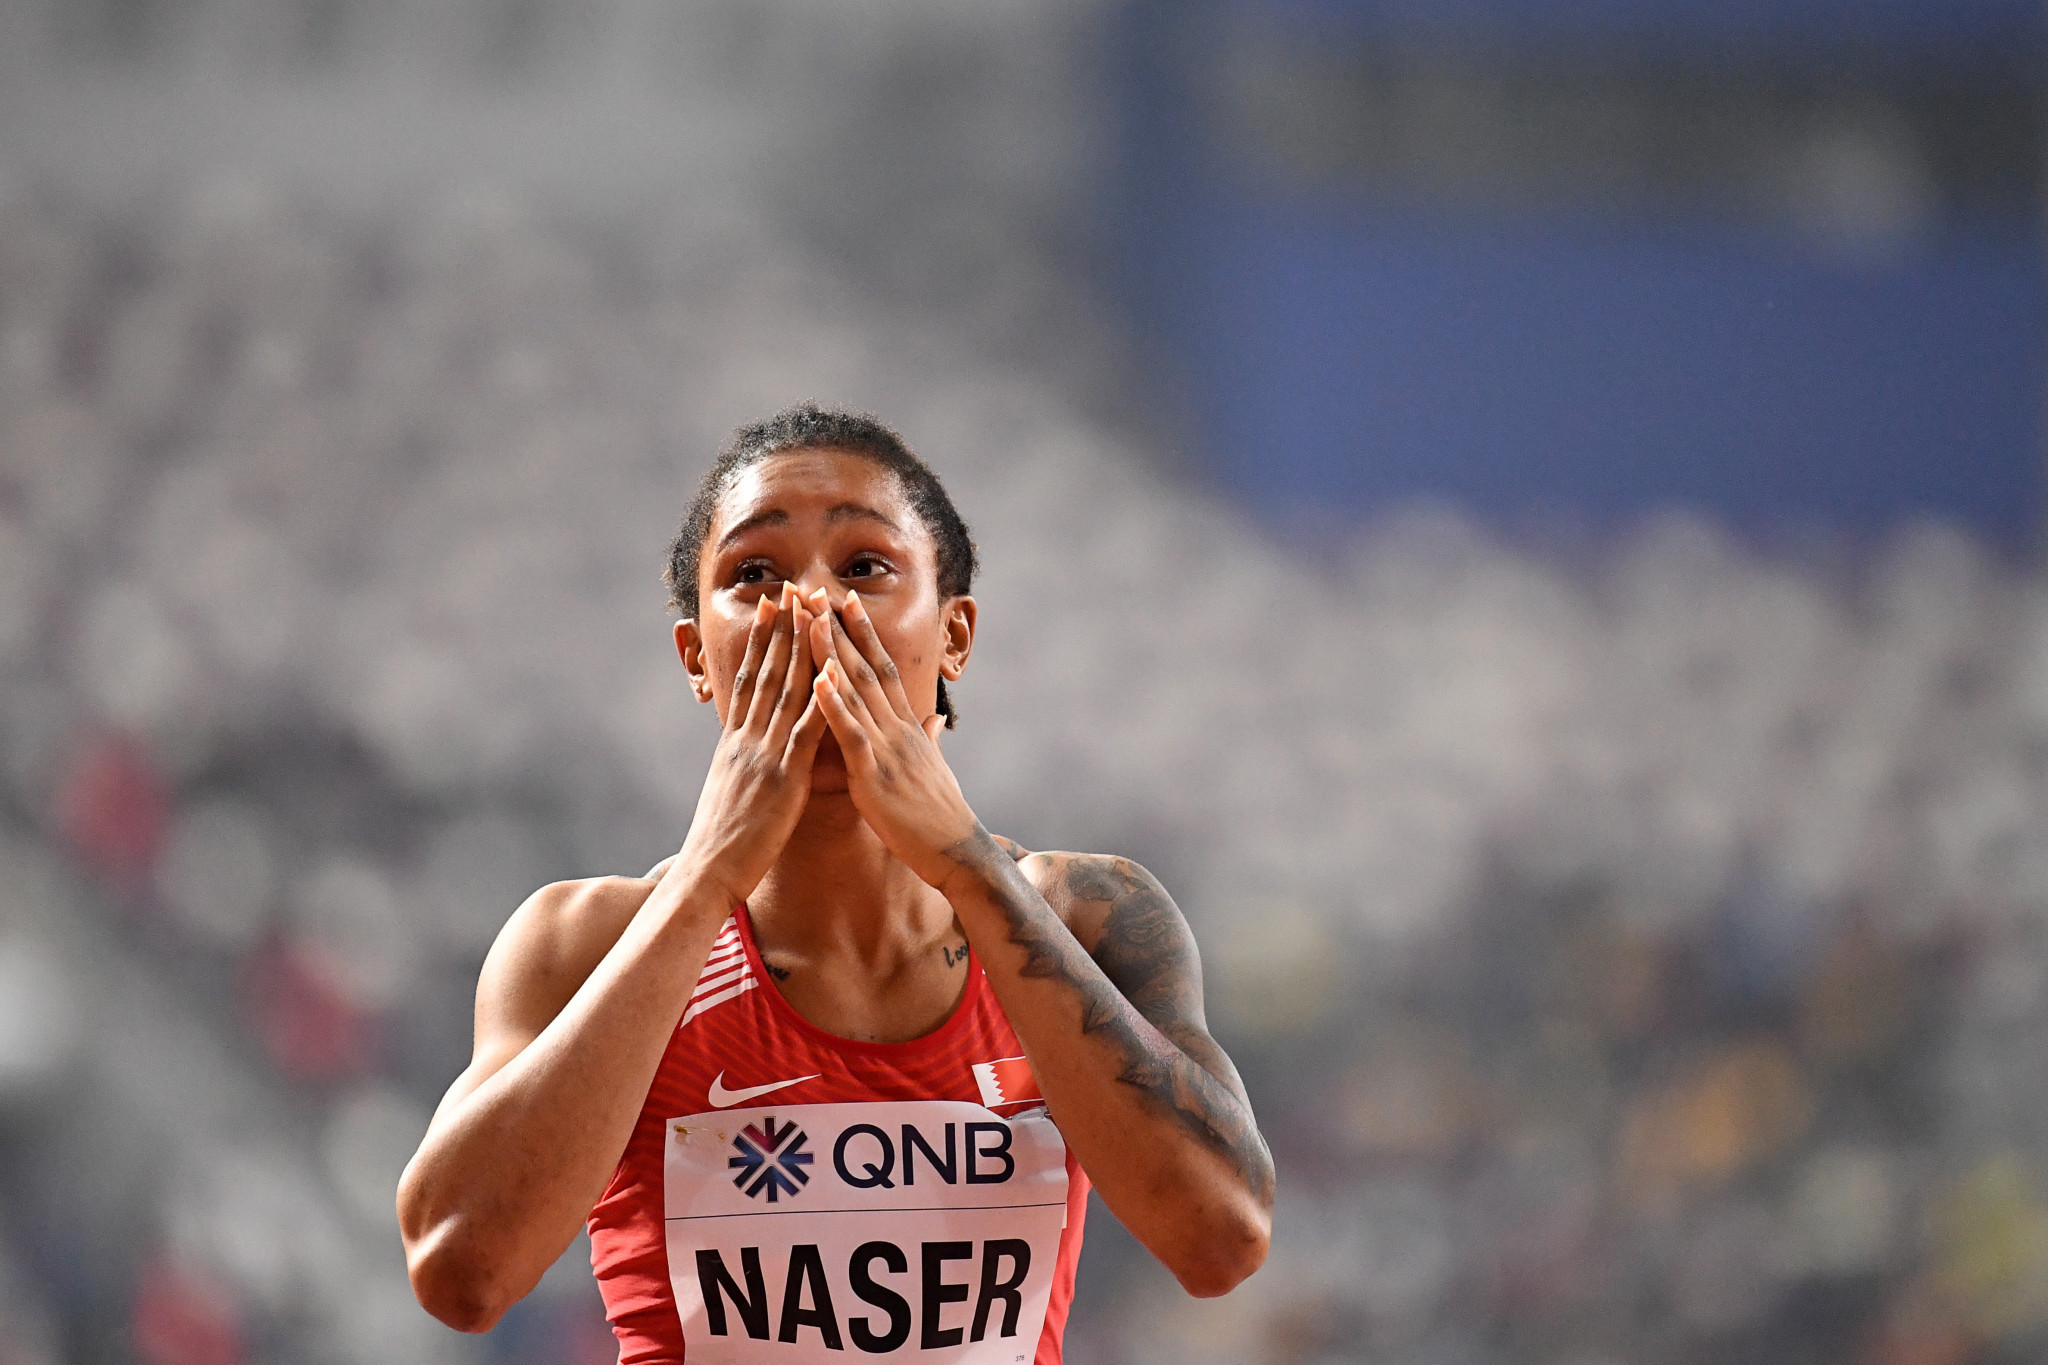 Naser given two-year ban and will miss Olympics as CAS finds world 400m champion guilty of anti-doping breach